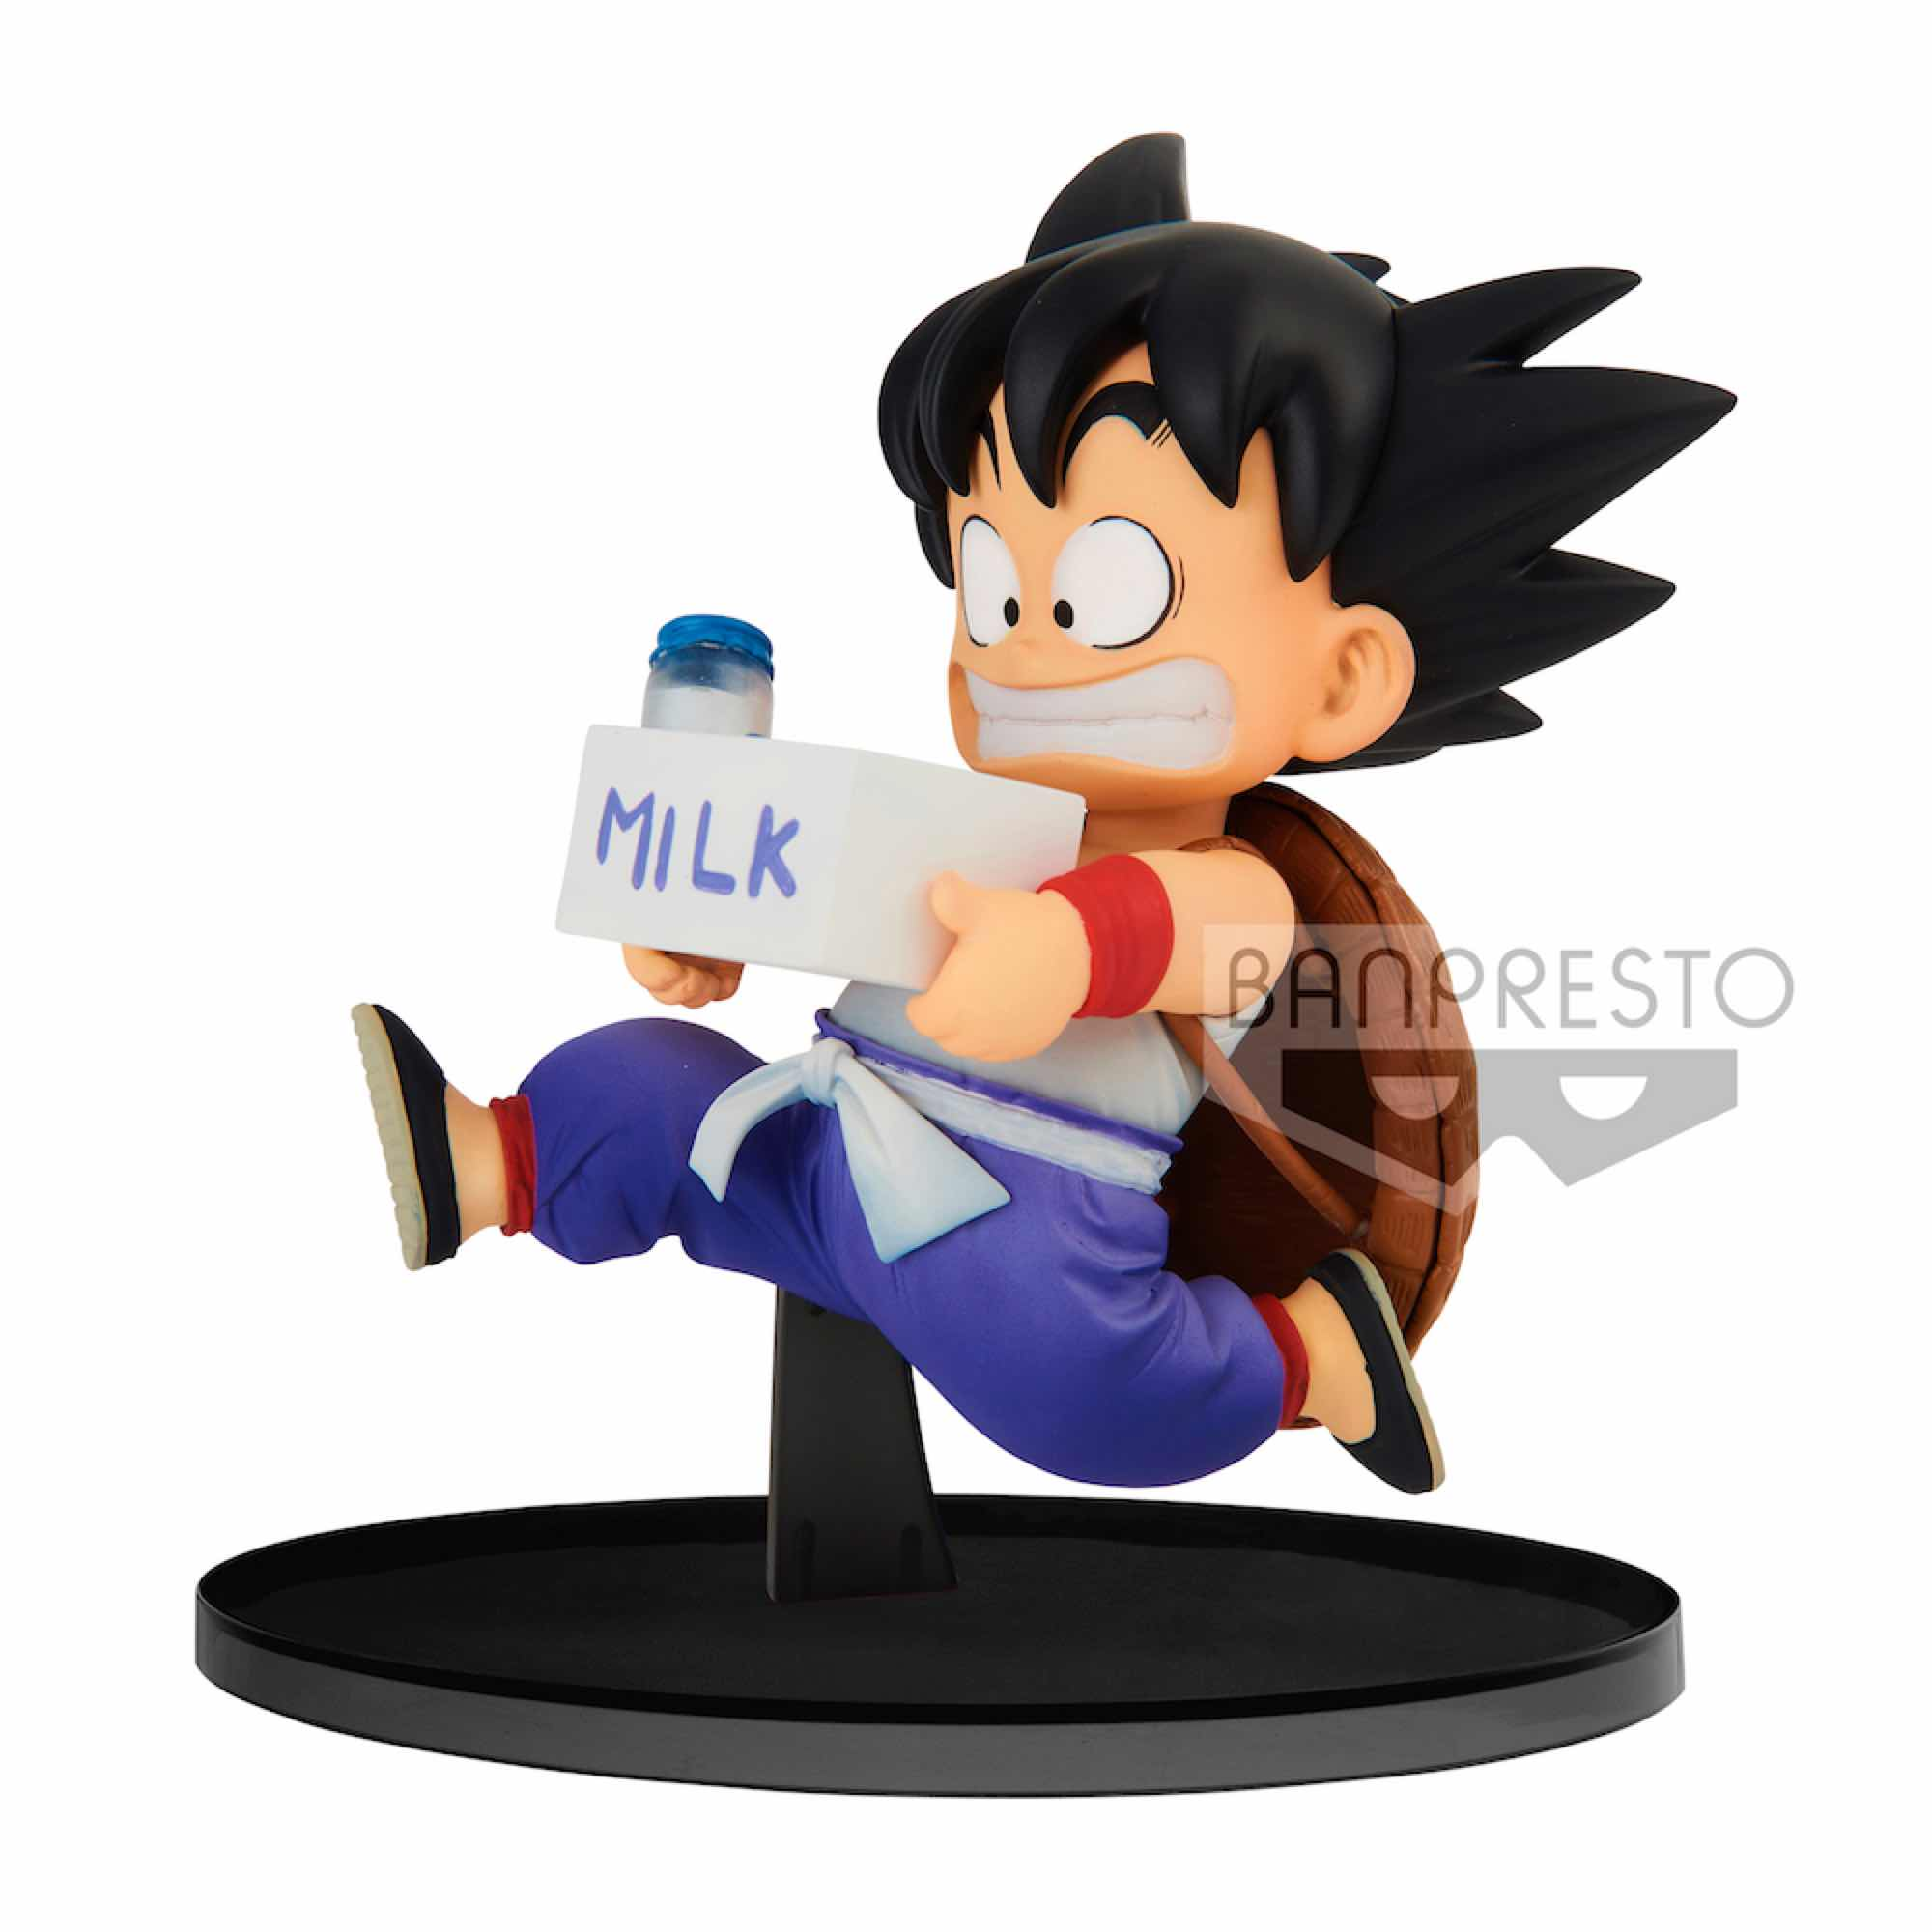 SON GOKU MILK FIGURA 11 CM DRAGON BALL Z WORLD FIGURE COLOSSEUM2 VOL. 7